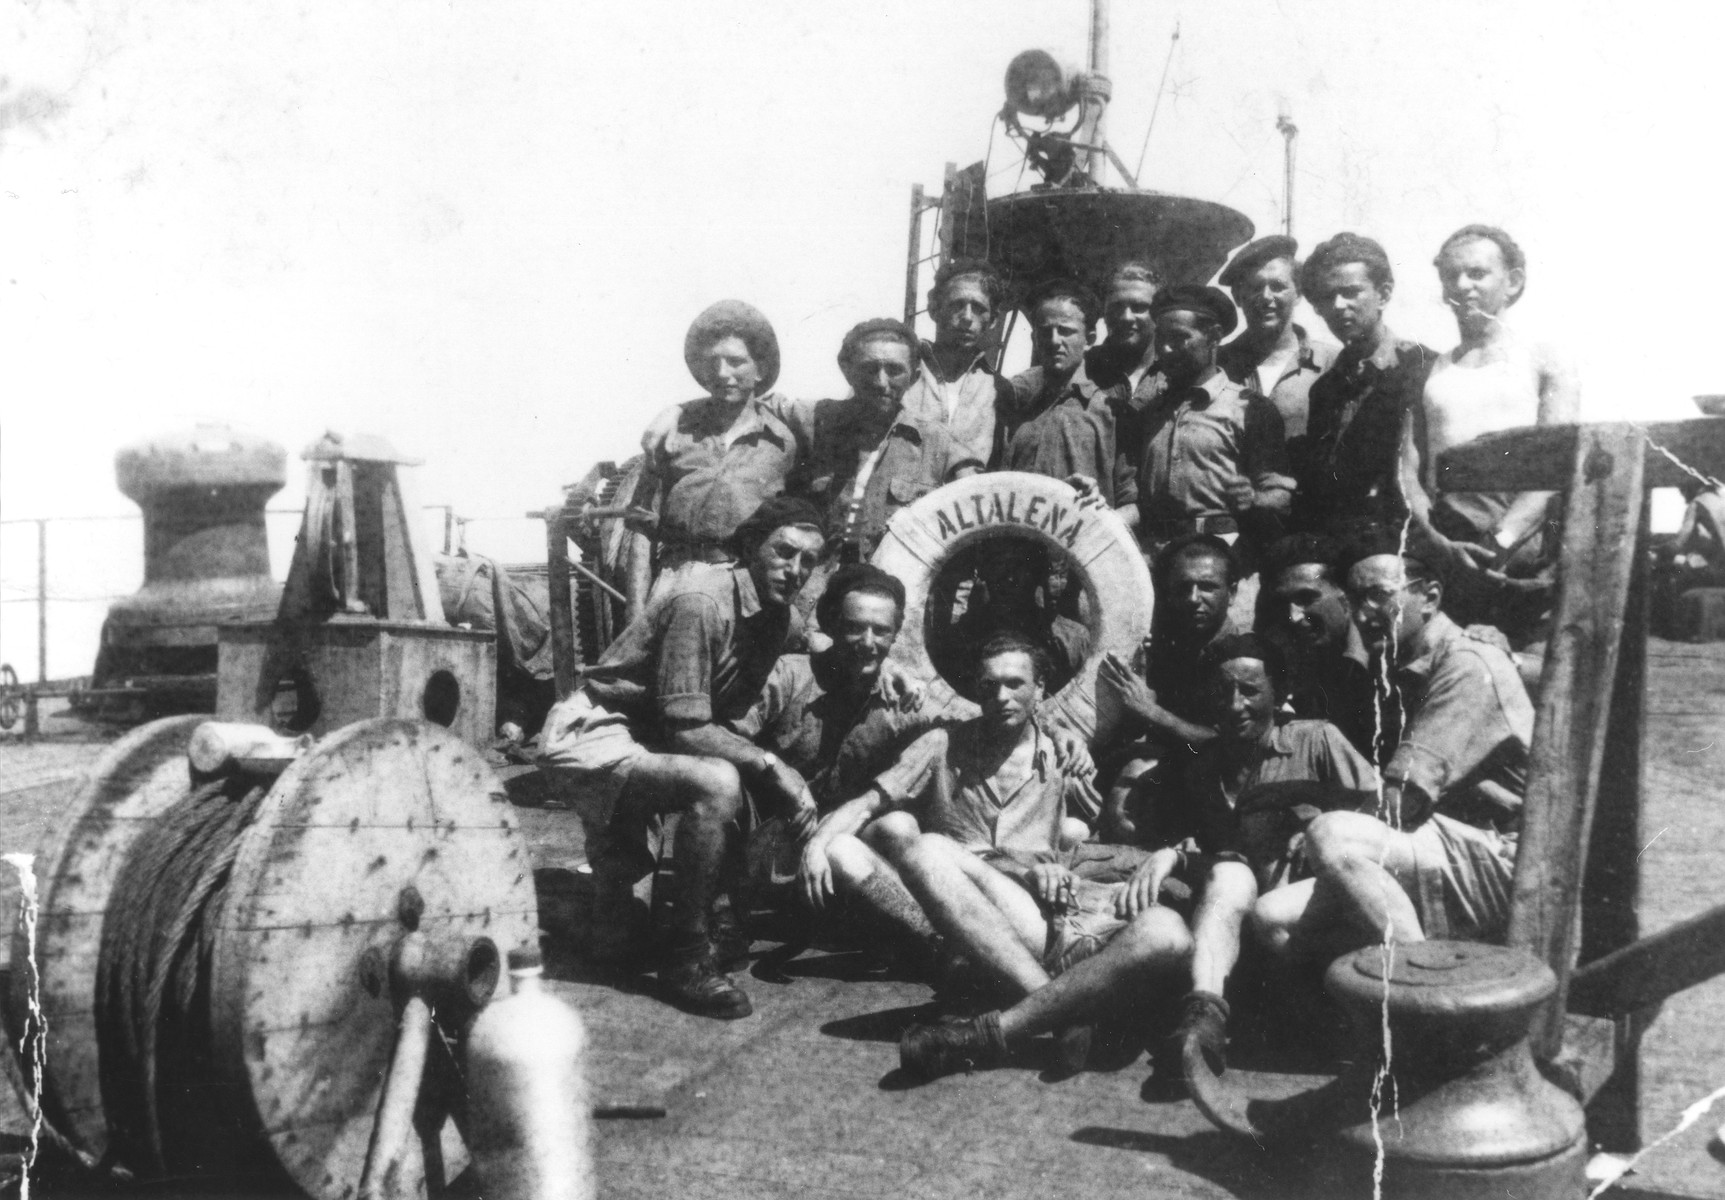 Group portrait of Jewish DPs aboard the Altalena, an immigrant ship bound for Israel.